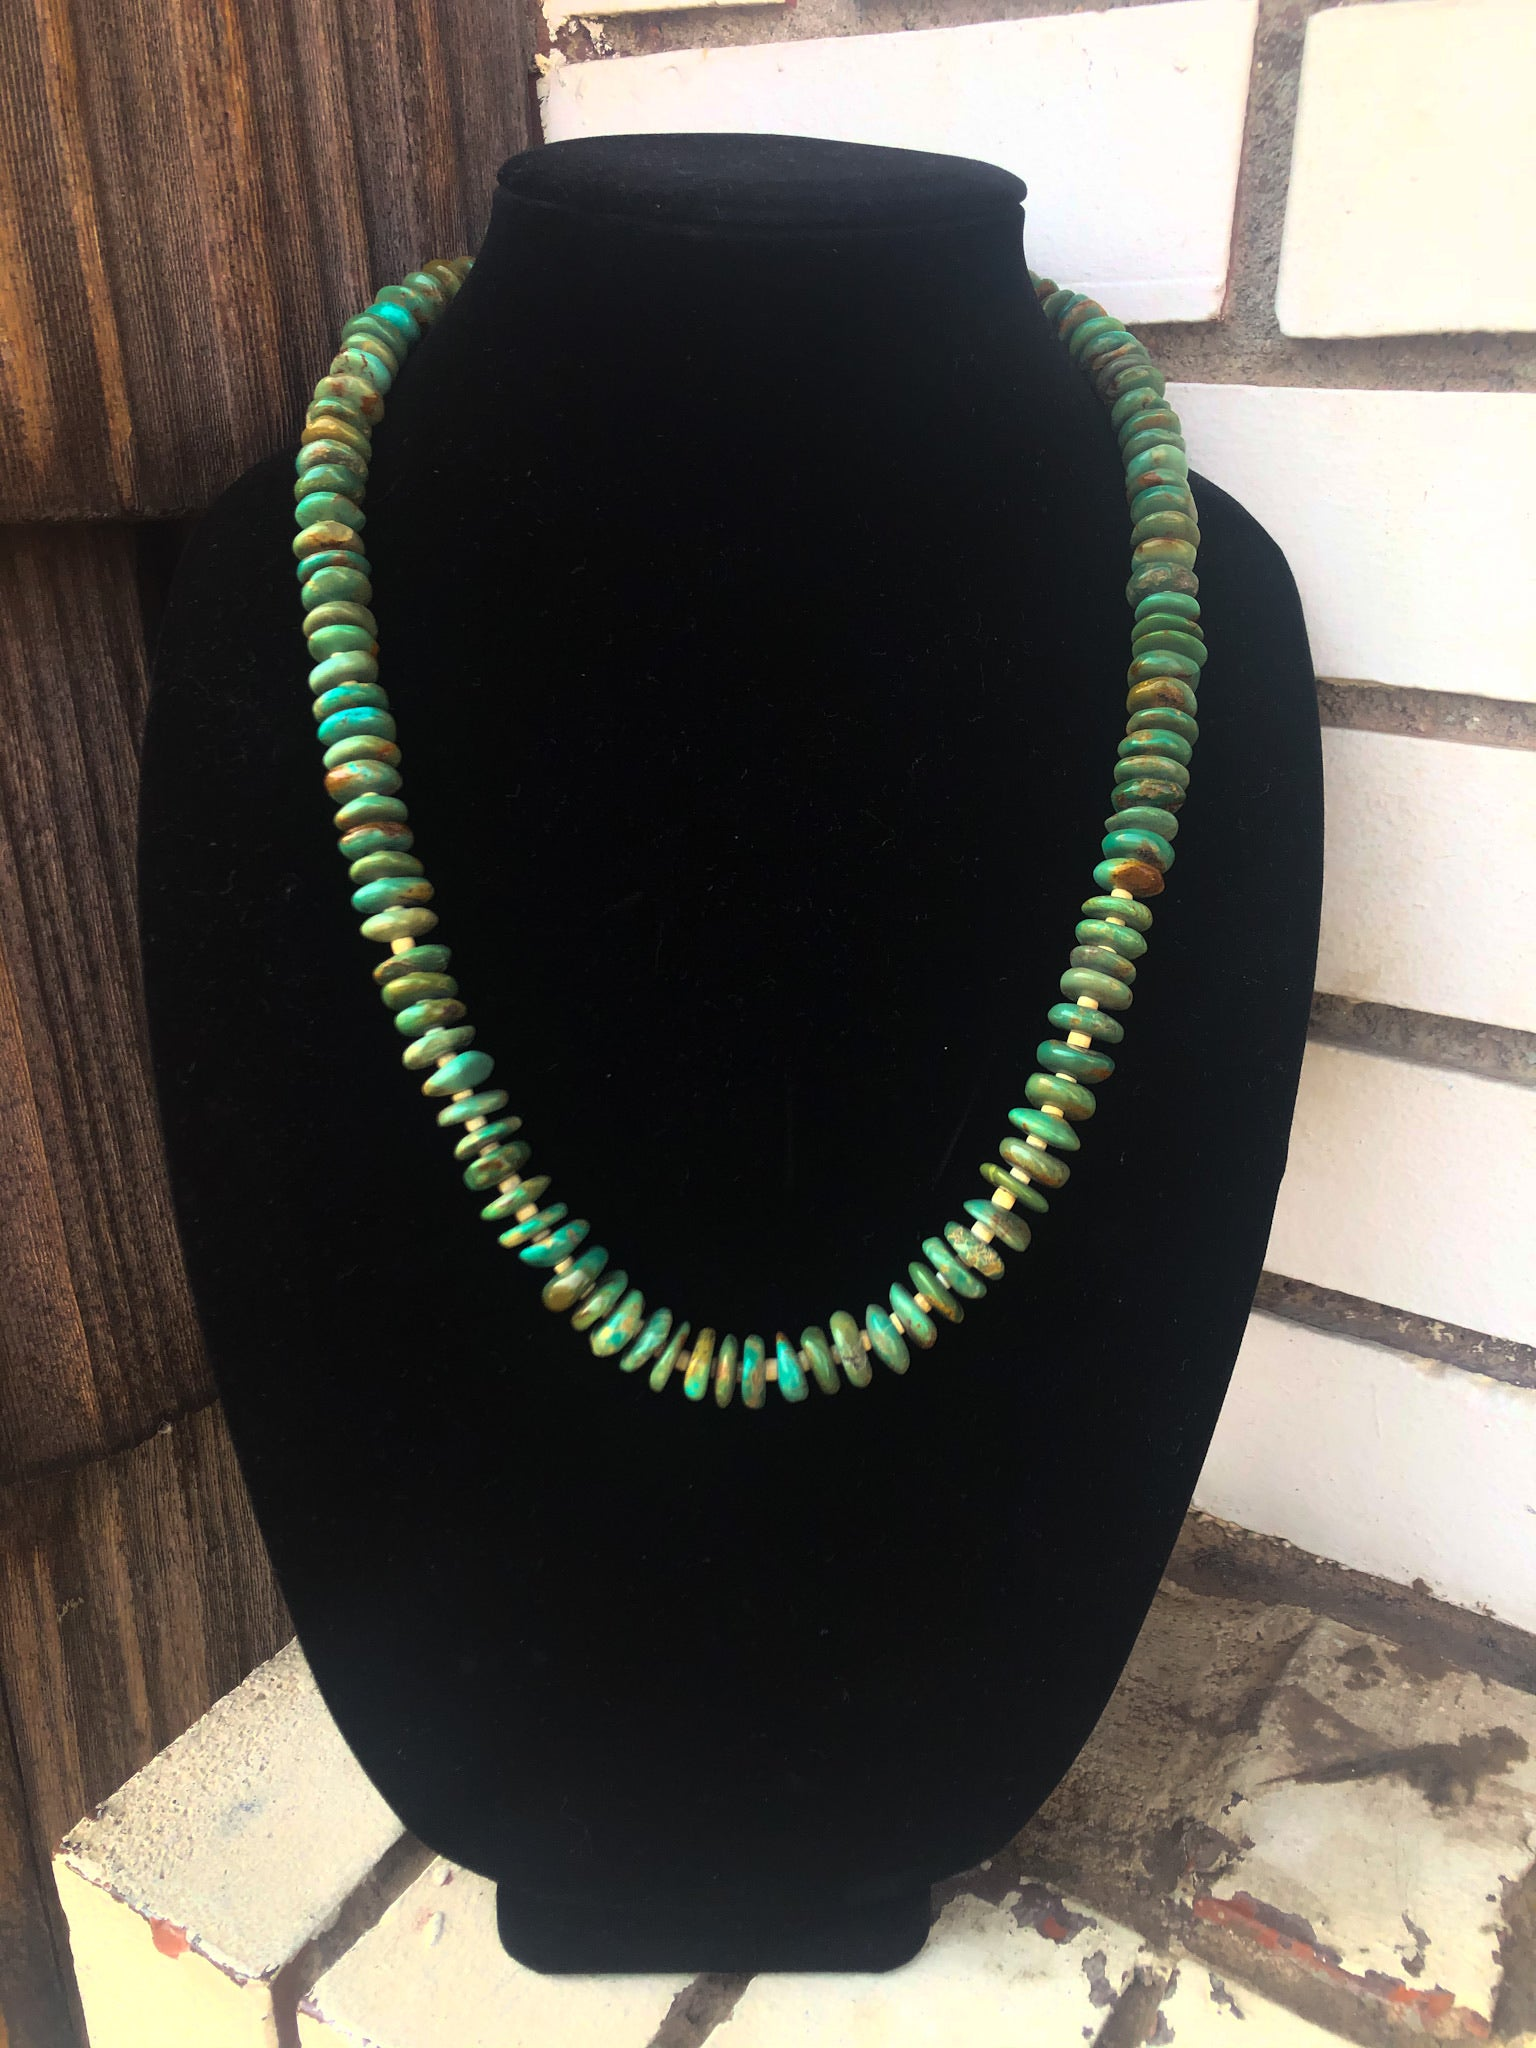 22-24in Green Turquoise and Heishi Necklace